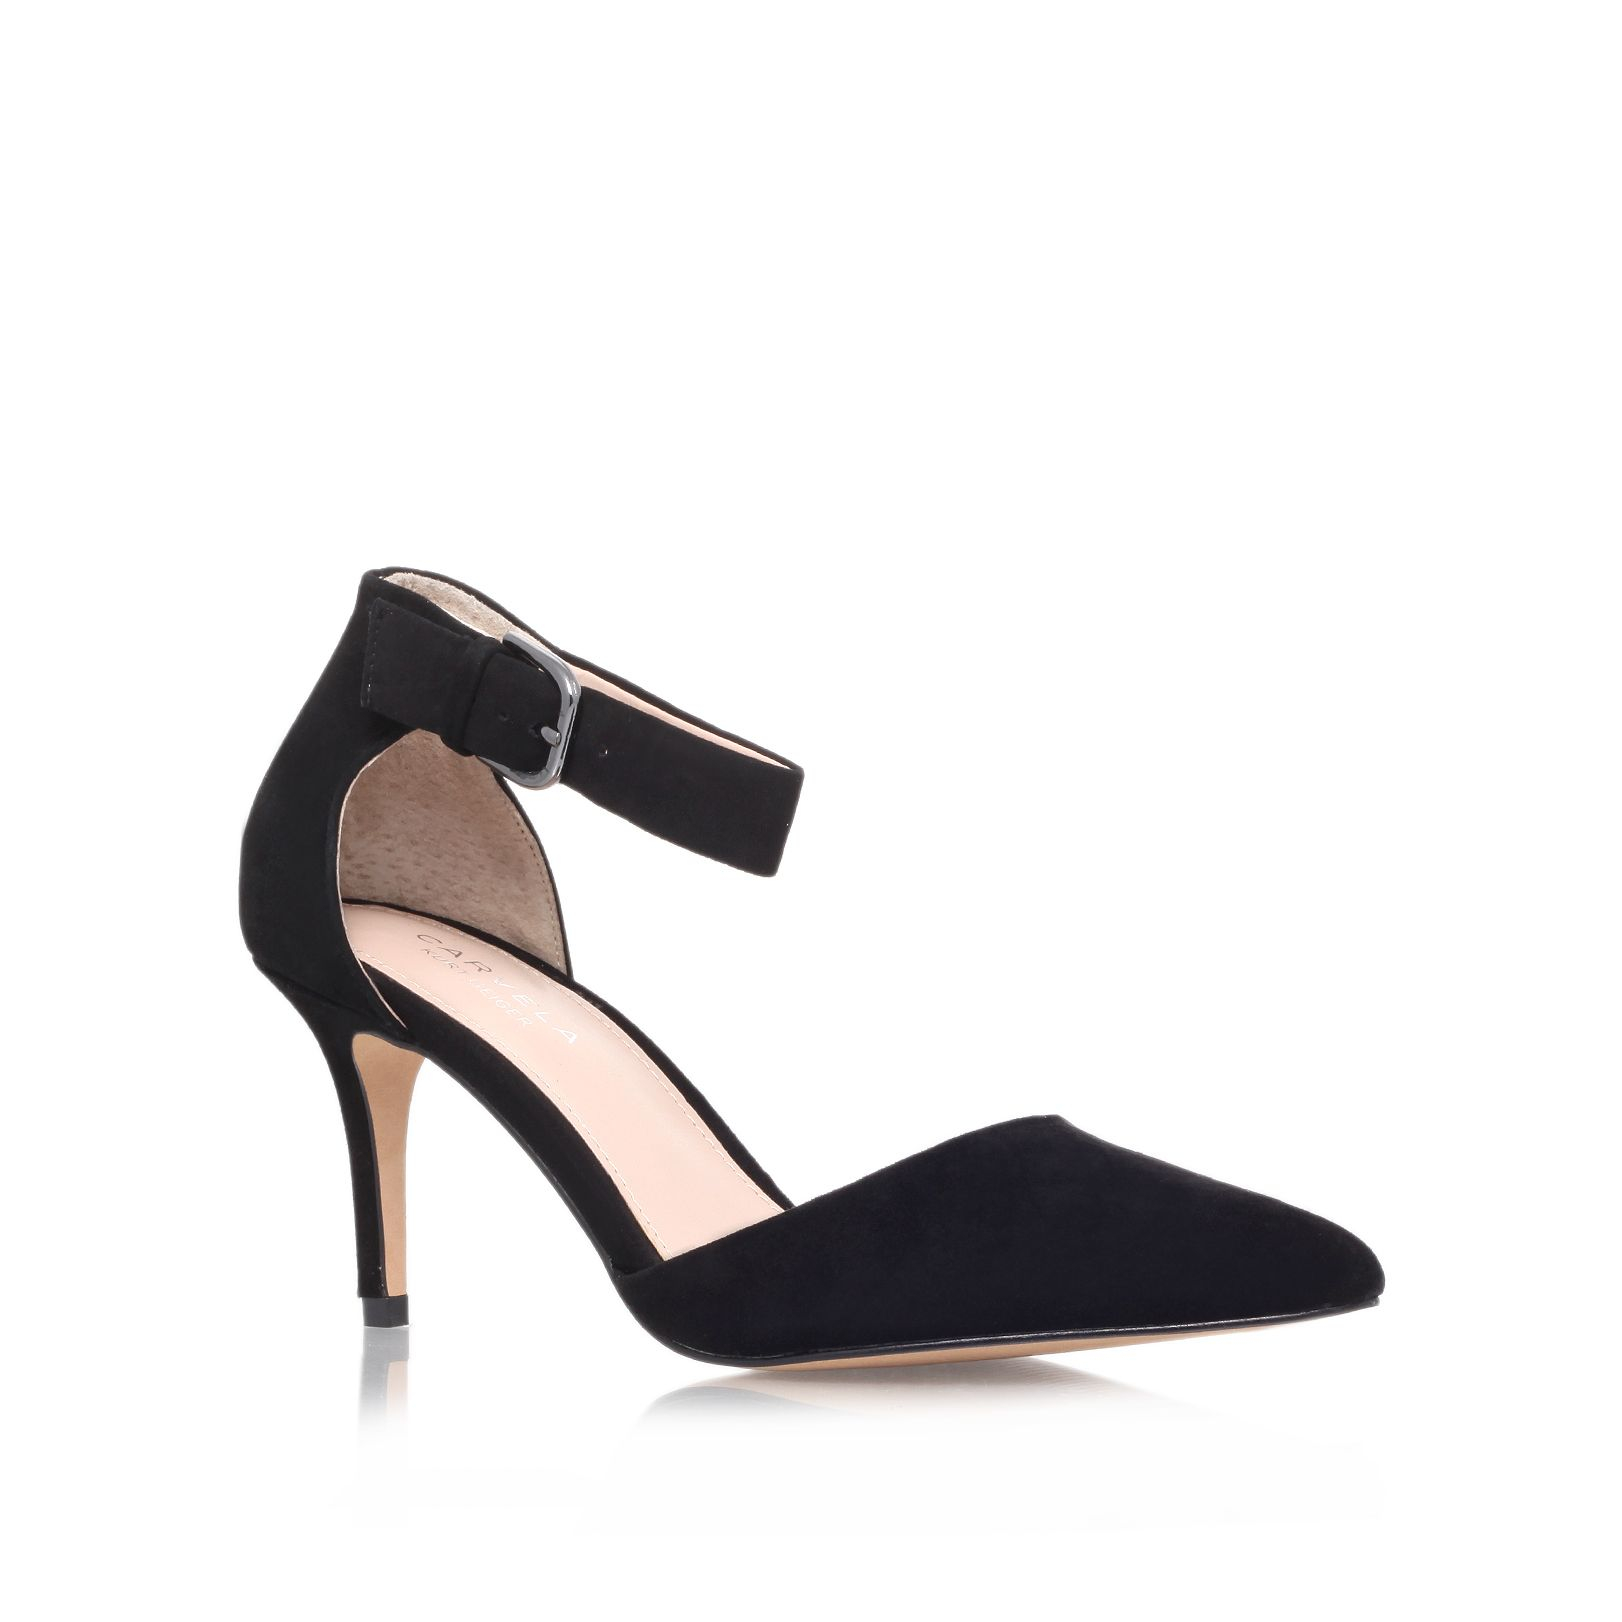 Black Pointed Heels With Ankle Strap - Is Heel